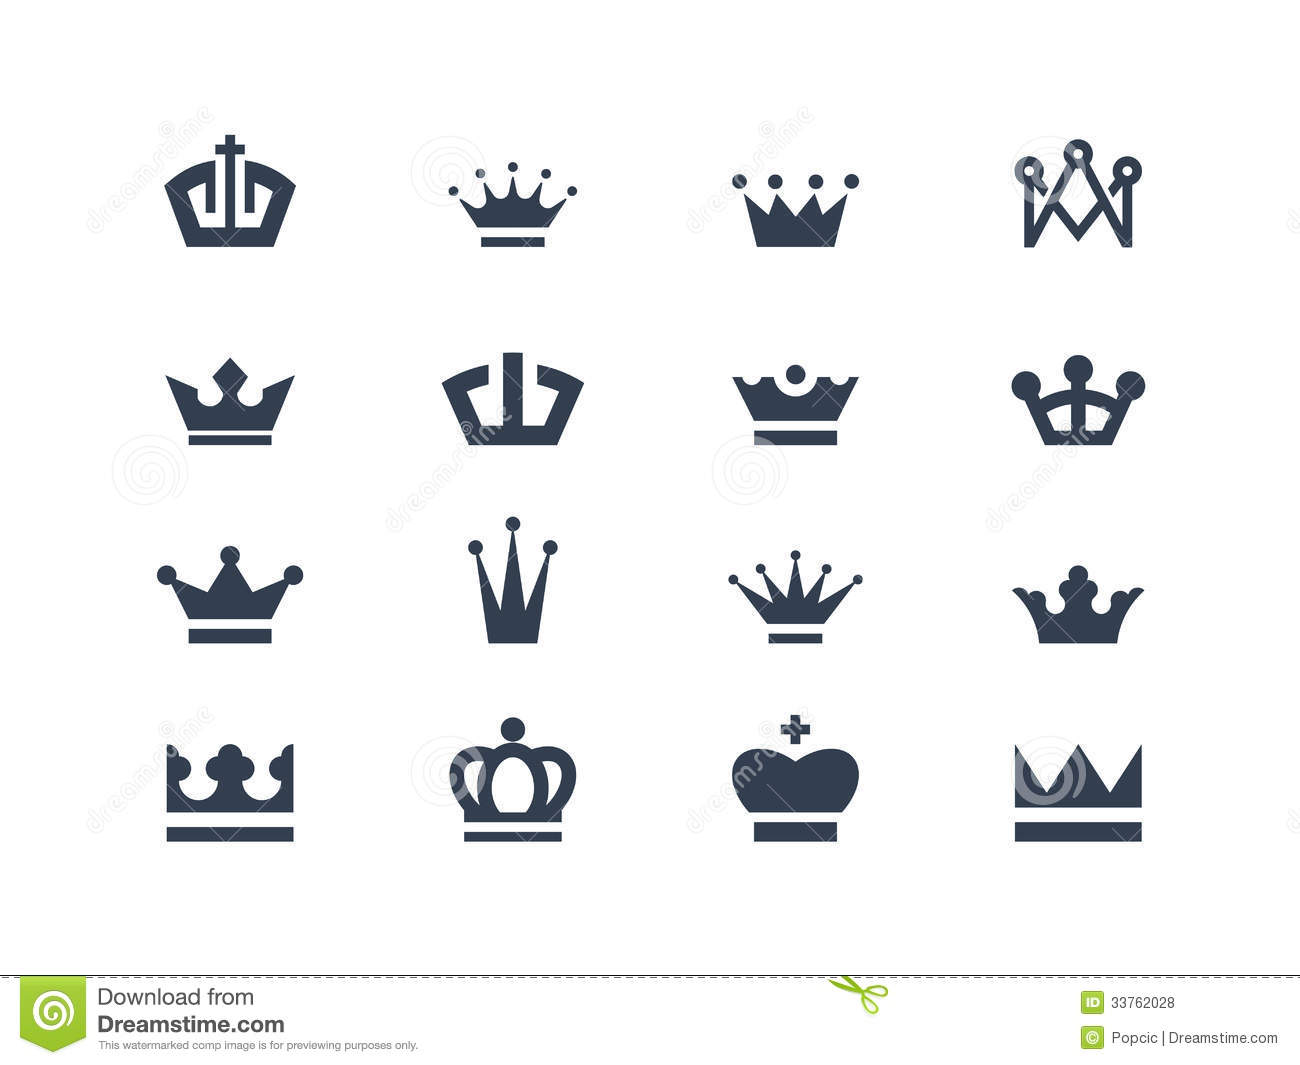 Symbols of a queen images symbol and sign ideas symbols of a queen gallery symbol and sign ideas symbols of a queen images symbol and biocorpaavc